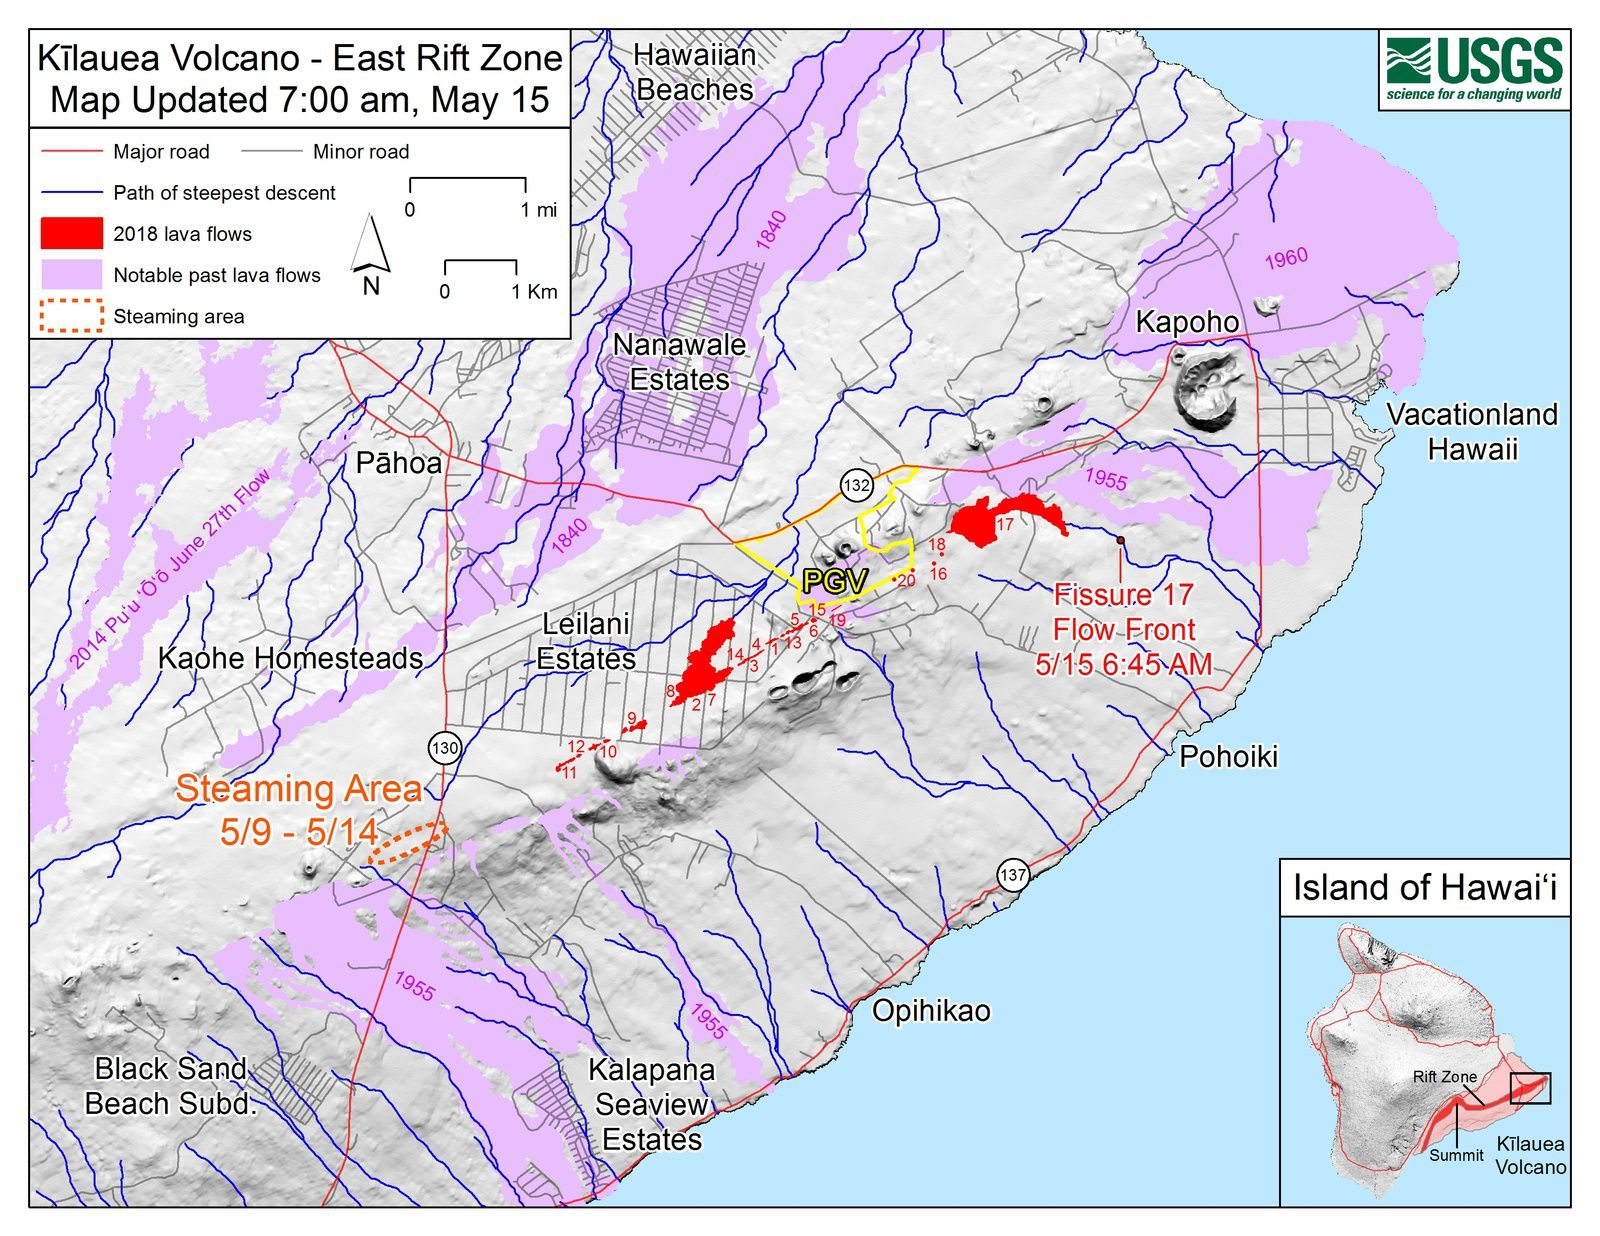 Kilauea - east rift zone - map of fissure and lava flows updated in 15 may 2018 - Doc. HVO